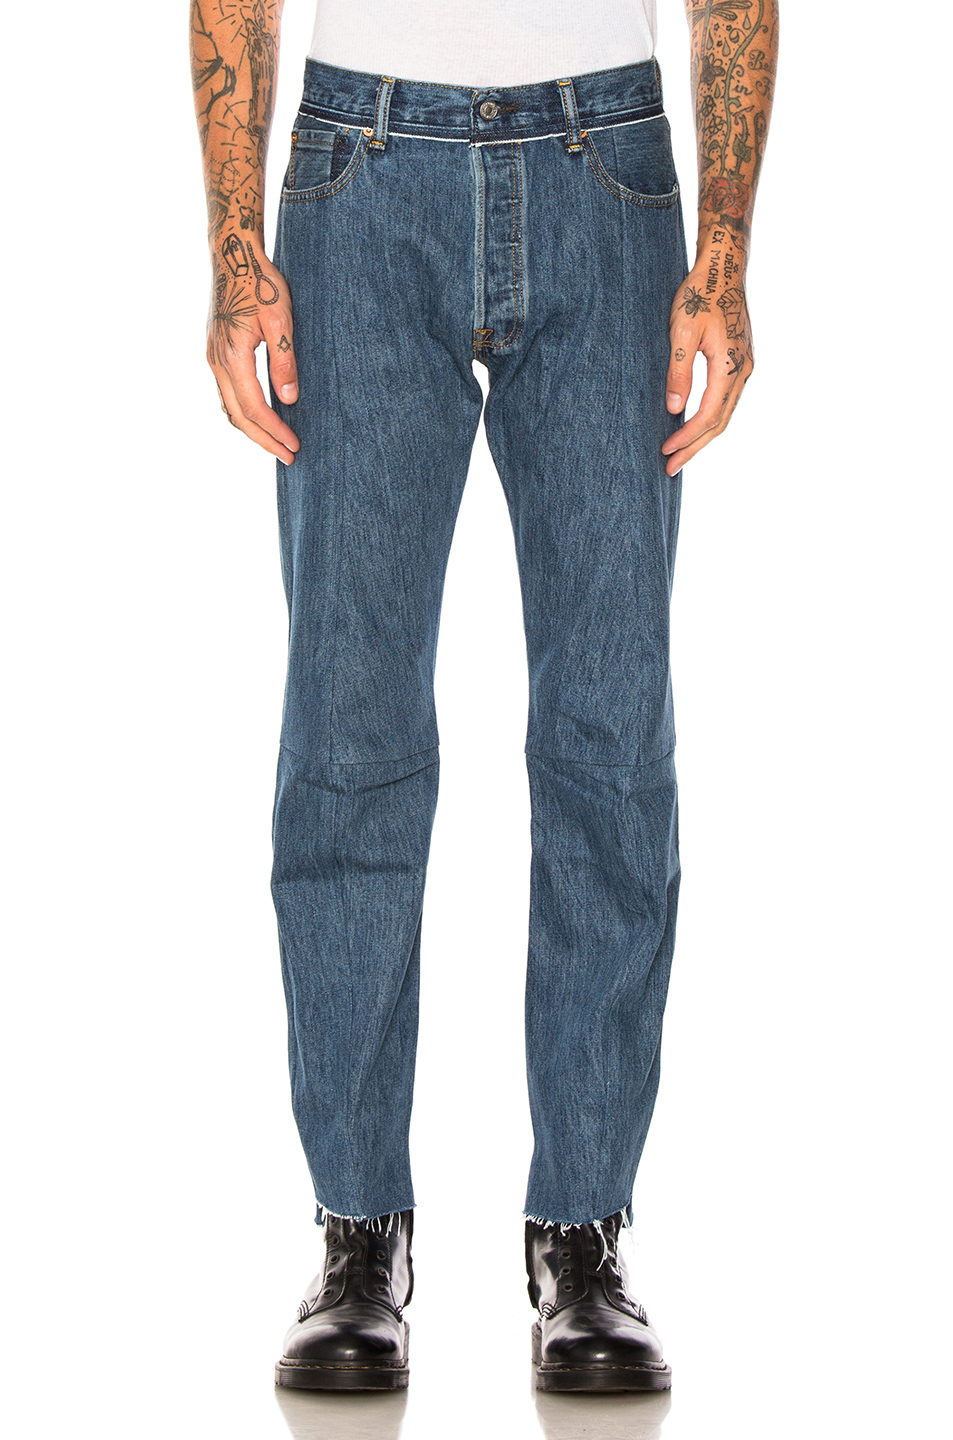 VETEMENTS x Levis Reworked Classic Denim in Blue